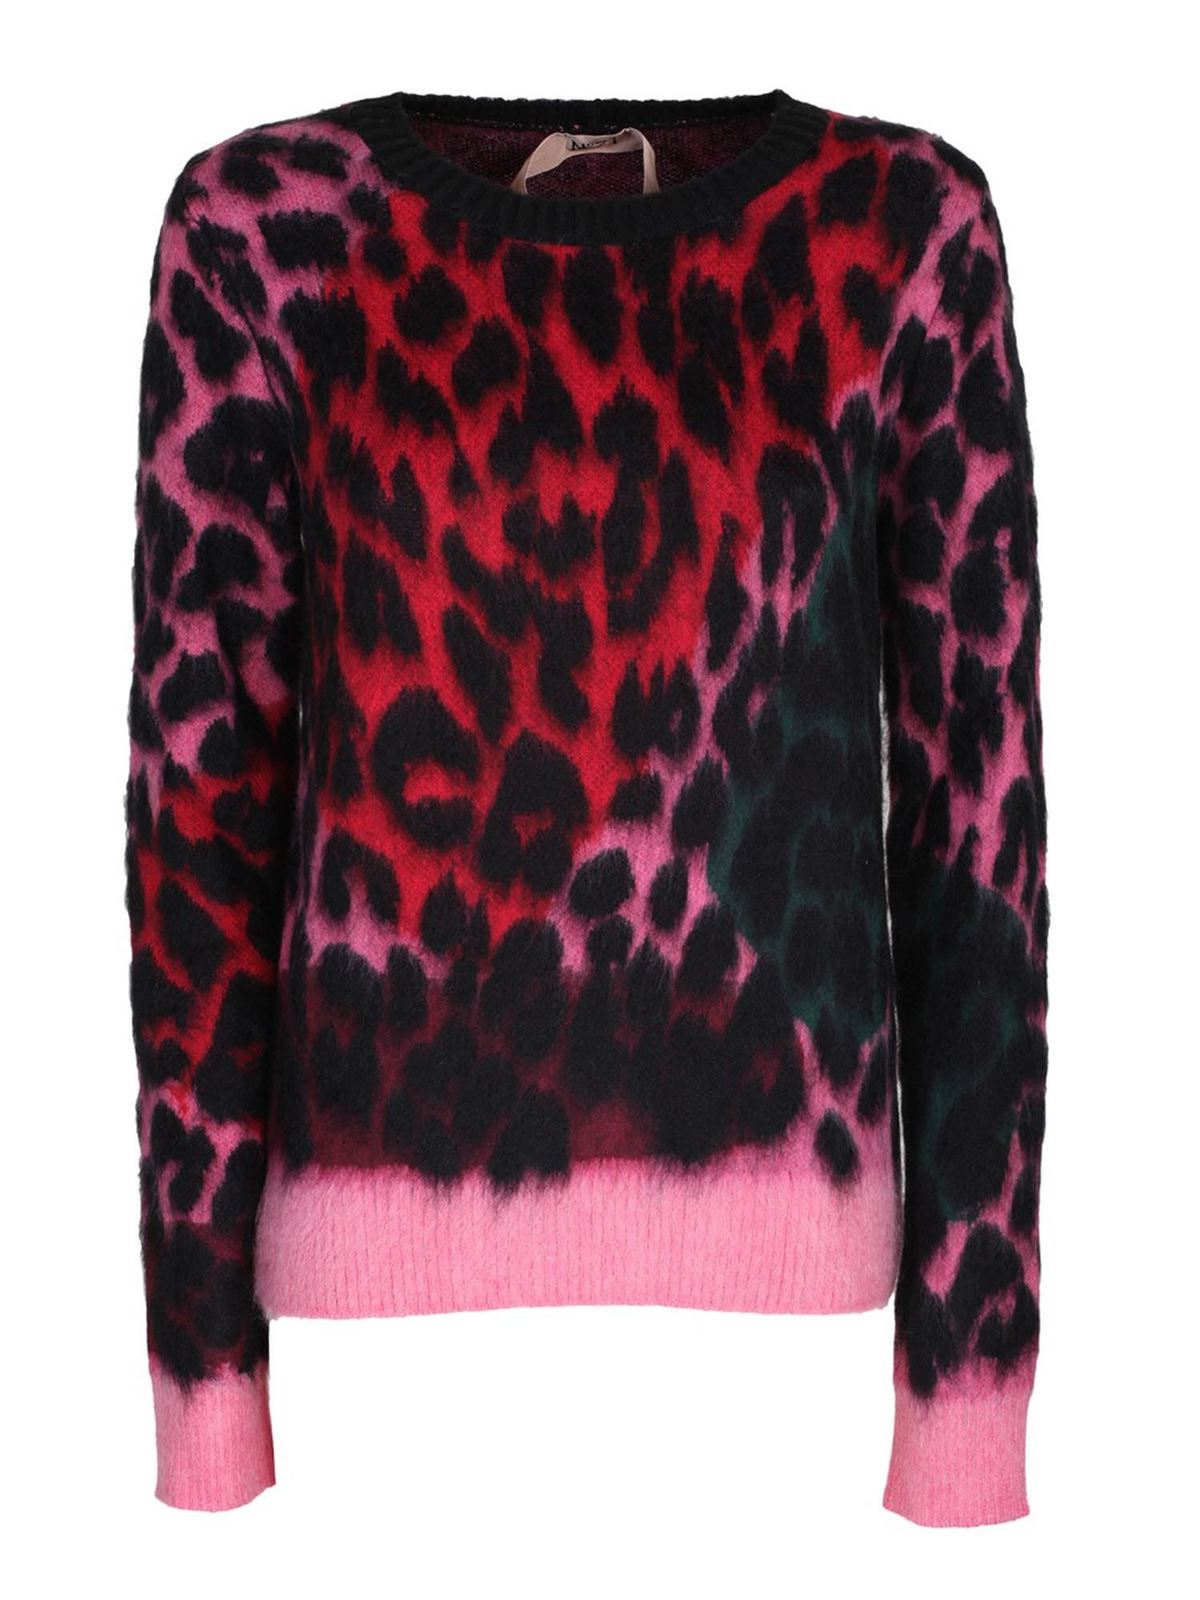 N°21 ANIMALIER CREWNECK SWEATER